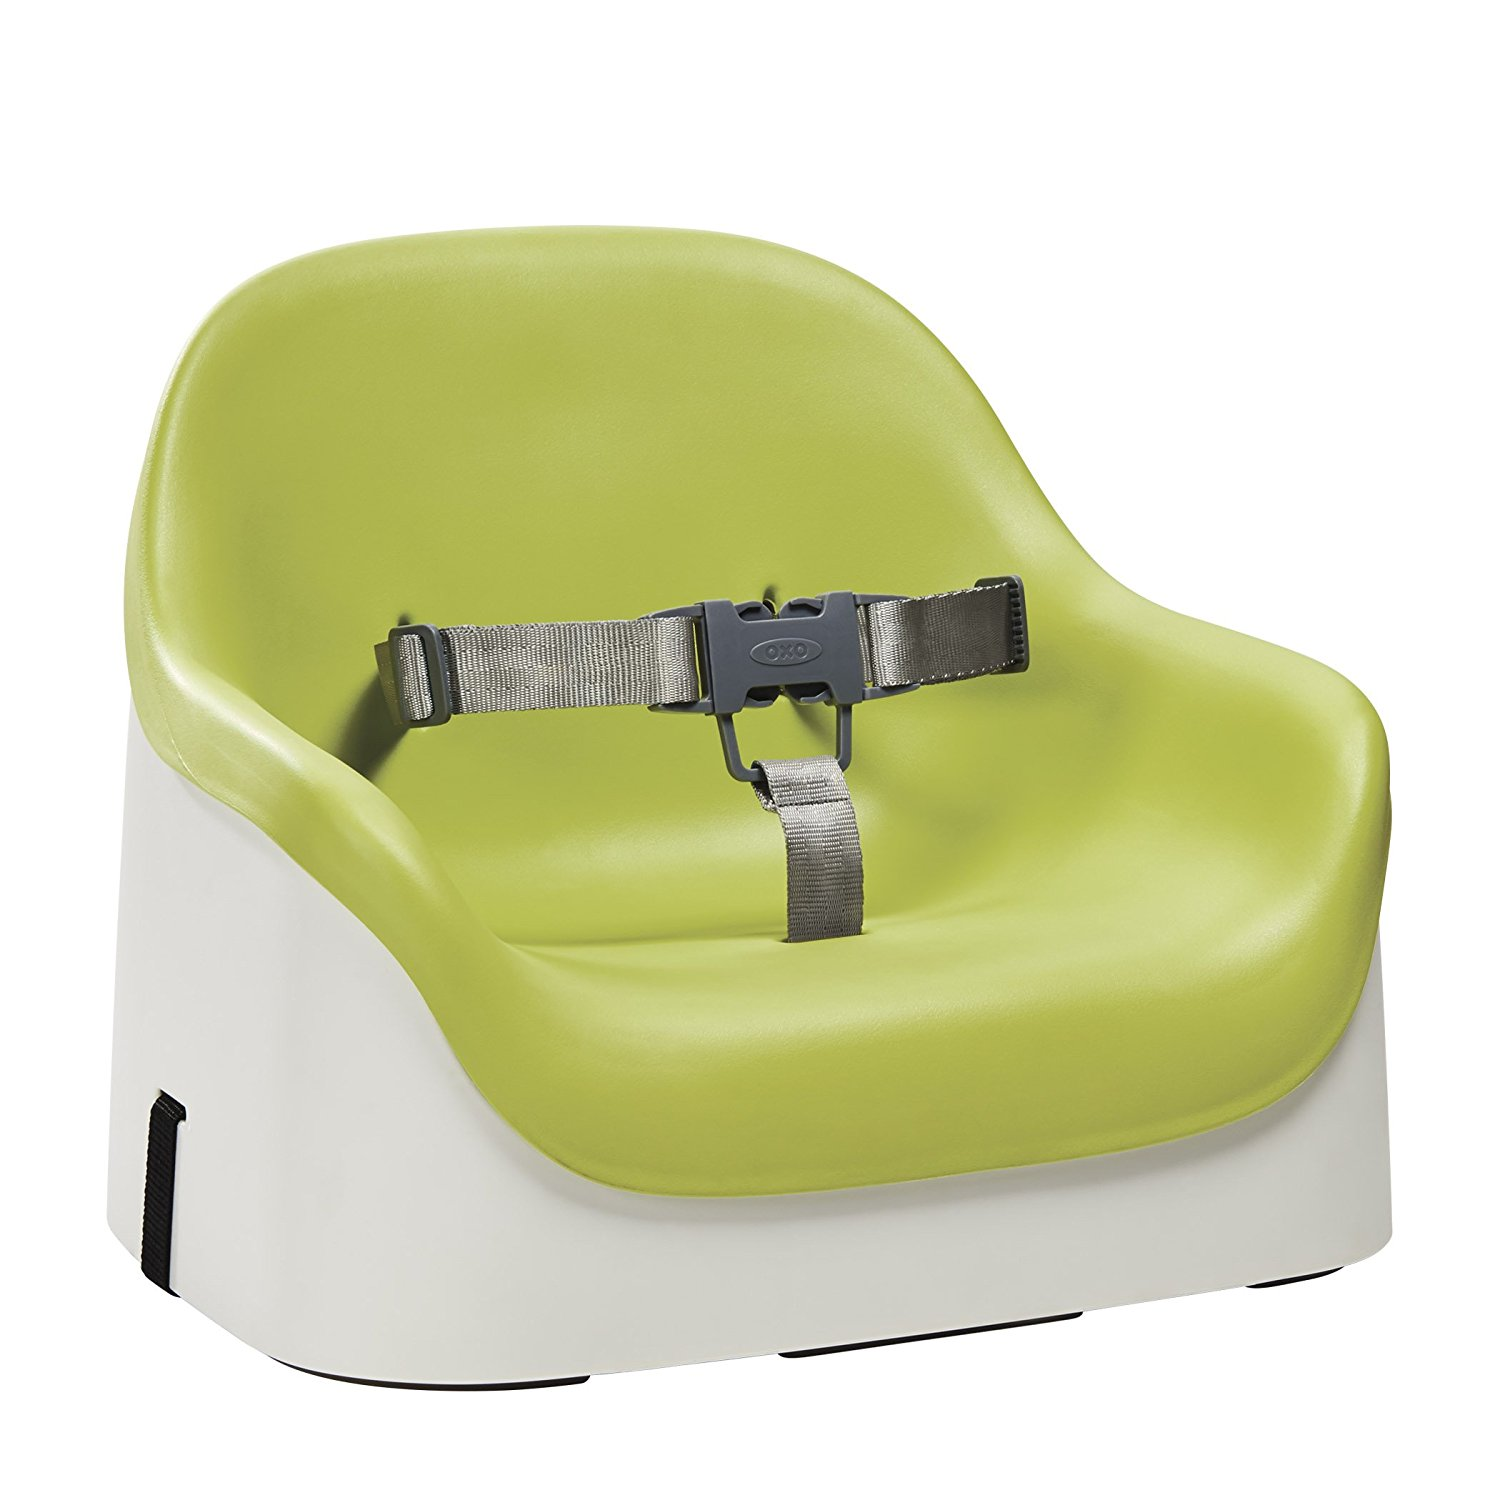 OXO Tot Nest Booster Seat with Straps - Green - Walmart.com